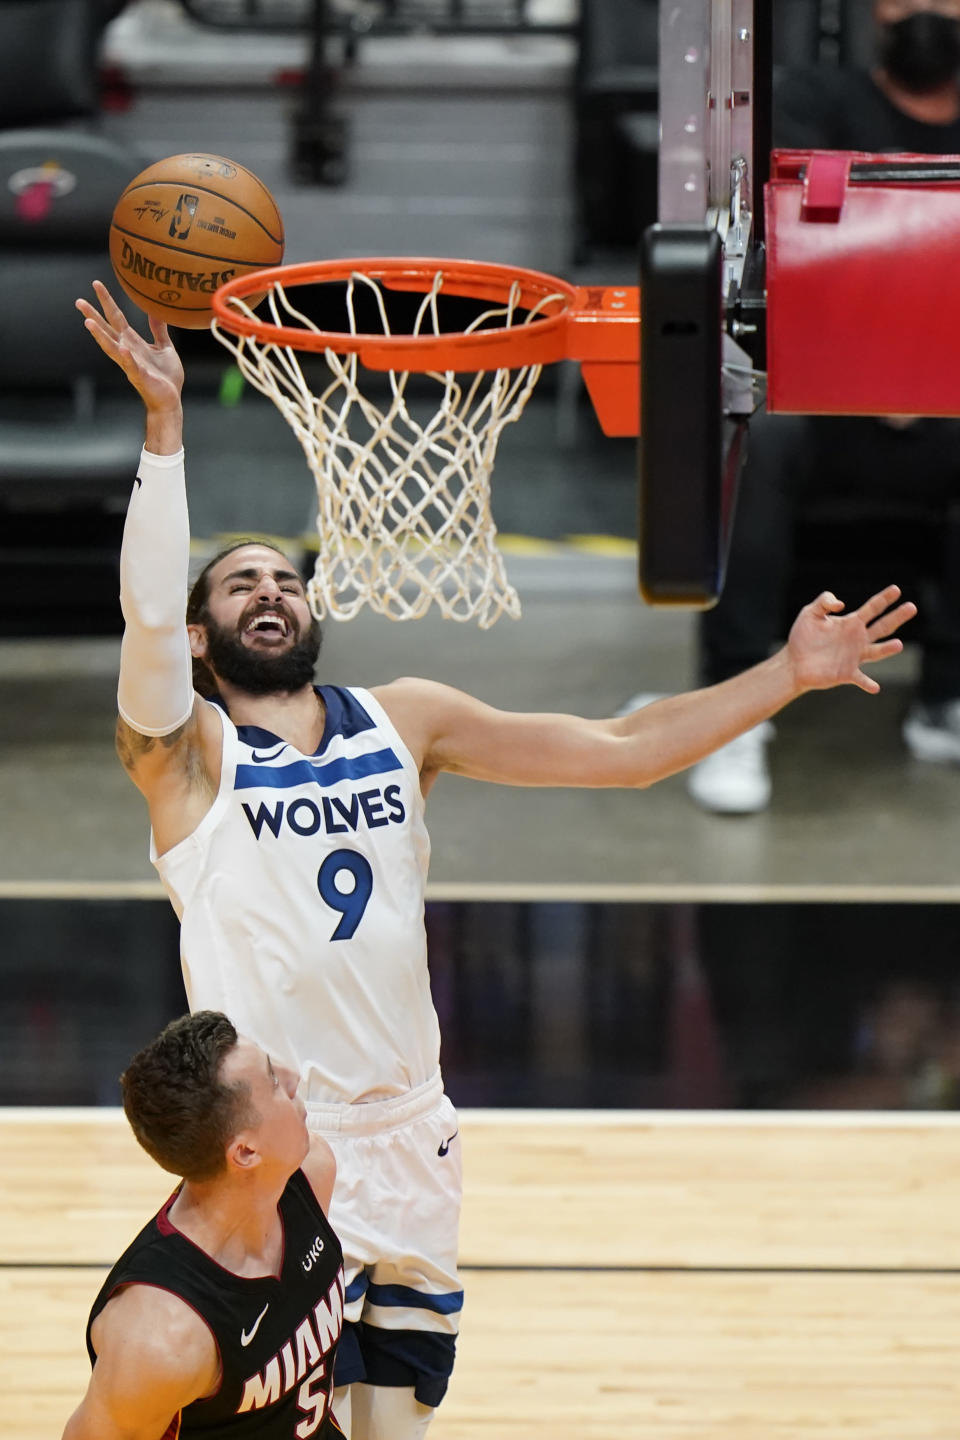 Minnesota Timberwolves guard Ricky Rubio (9) goes up to shoot against Miami Heat forward Duncan Robinson (55) during the first half of an NBA basketball game, Friday, May 7, 2021, in Miami. (AP Photo/Wilfredo Lee)